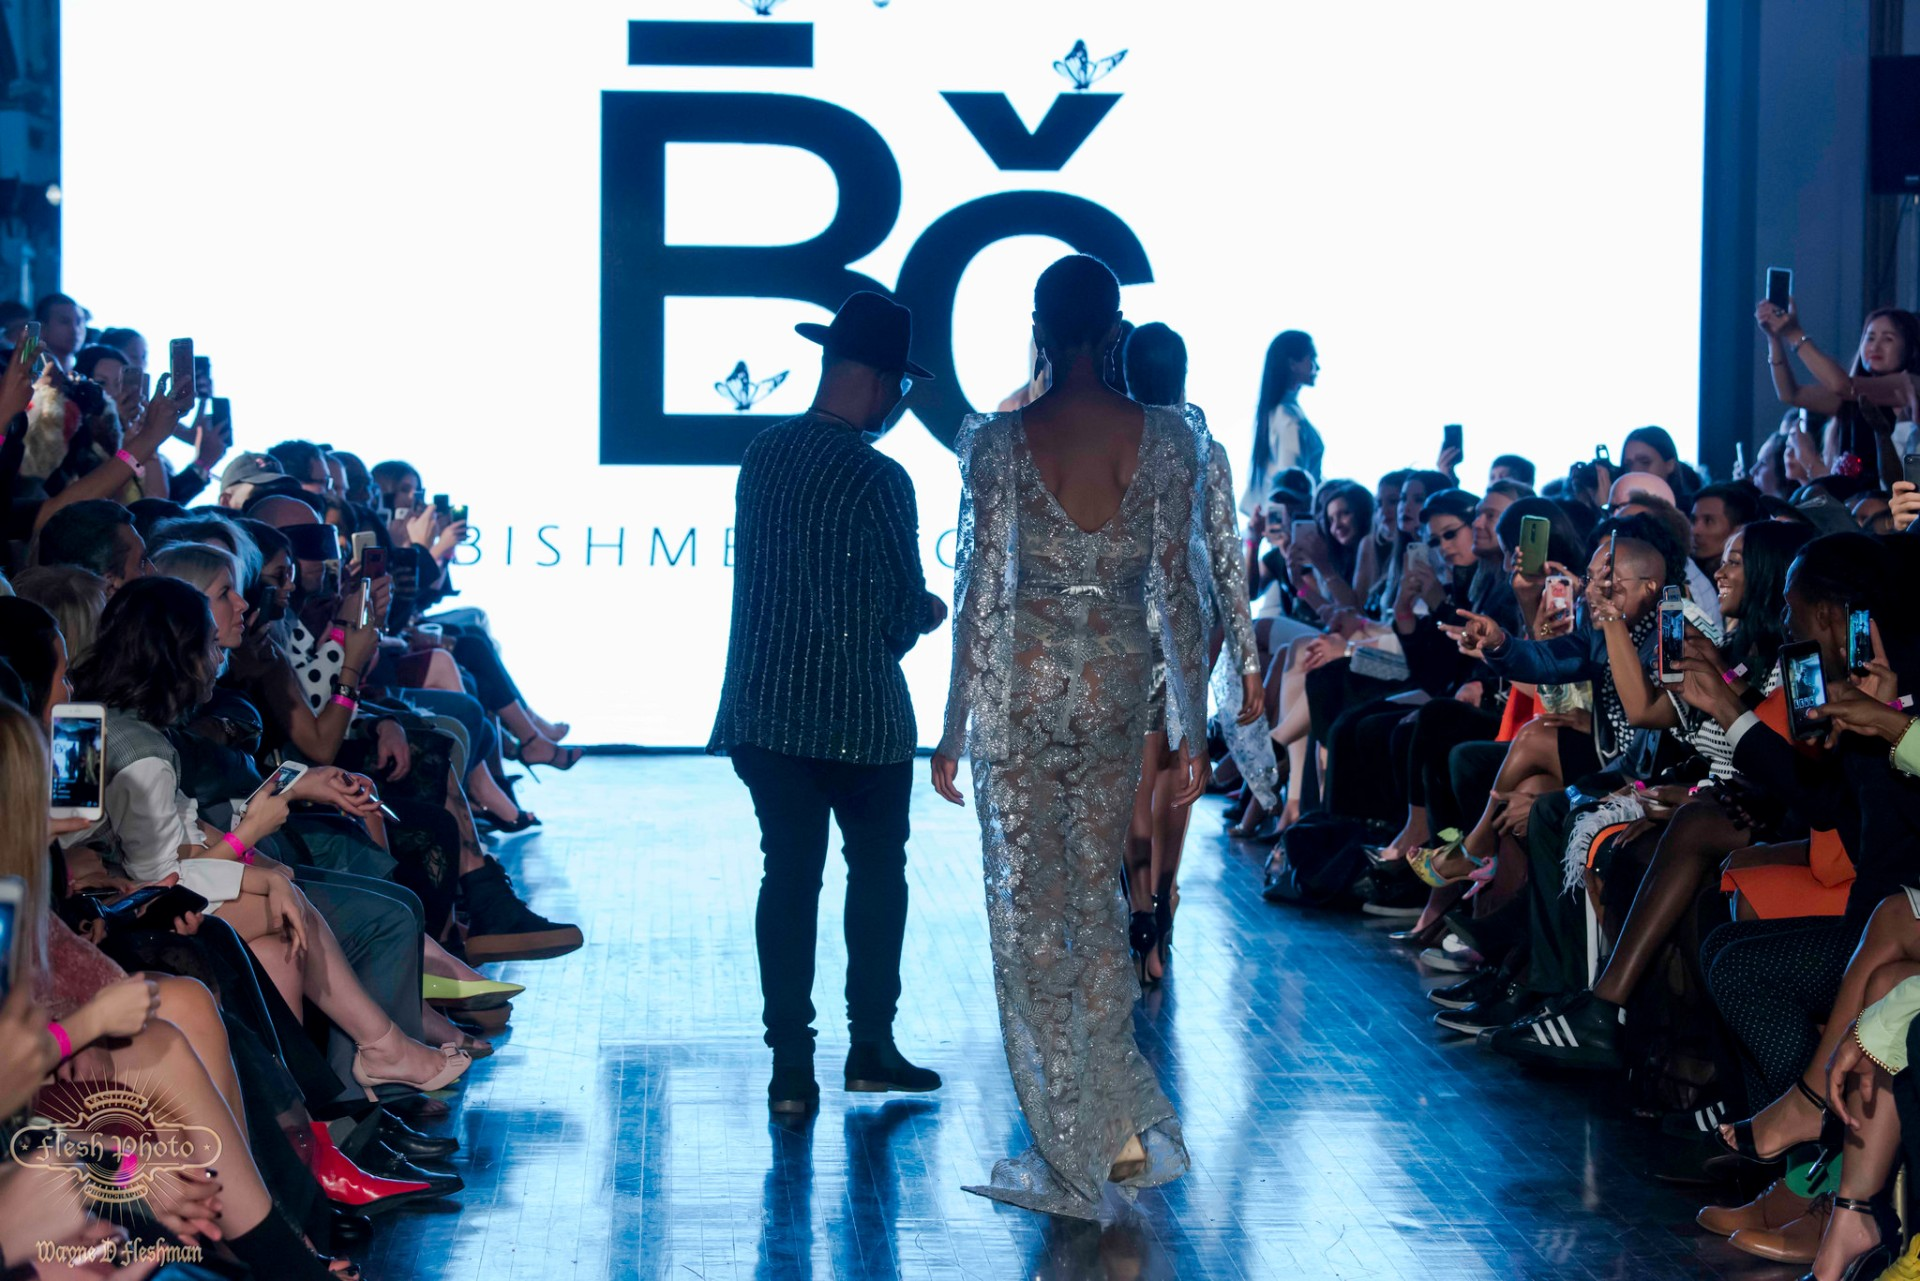 photo: Wayne D. Fleshman, LA Fashion Week, EDGExpo.com,